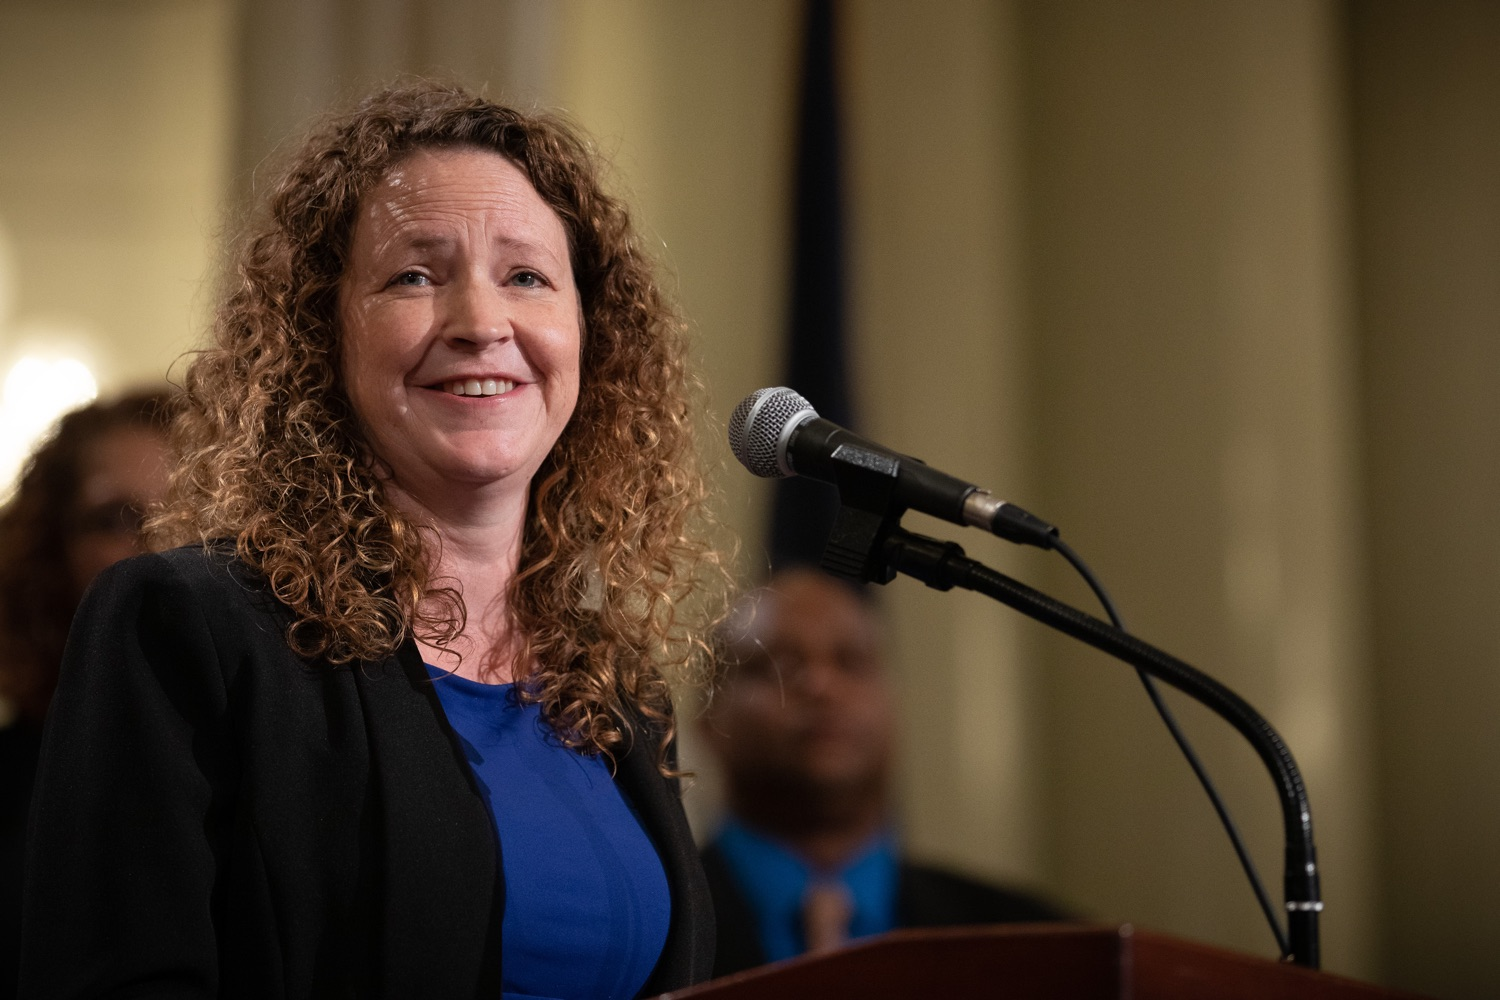 """<a href=""""https://filesource.wostreaming.net/commonwealthofpa/photo/17601_gov_right_on_crime_dz_010.jpg"""" target=""""_blank"""">⇣Download Photo<br></a>Carrie Pettus-Davis speaking at the event. Governor Tom Wolf was joined by Deputy Secretary of Corrections Christian Stephens and national criminal justice reform advocates today in the Capitol Rotunda to push for commonsense probation reforms that address probation sentences and probation lengths.  Harrisburg, PA  November 18, 2019"""